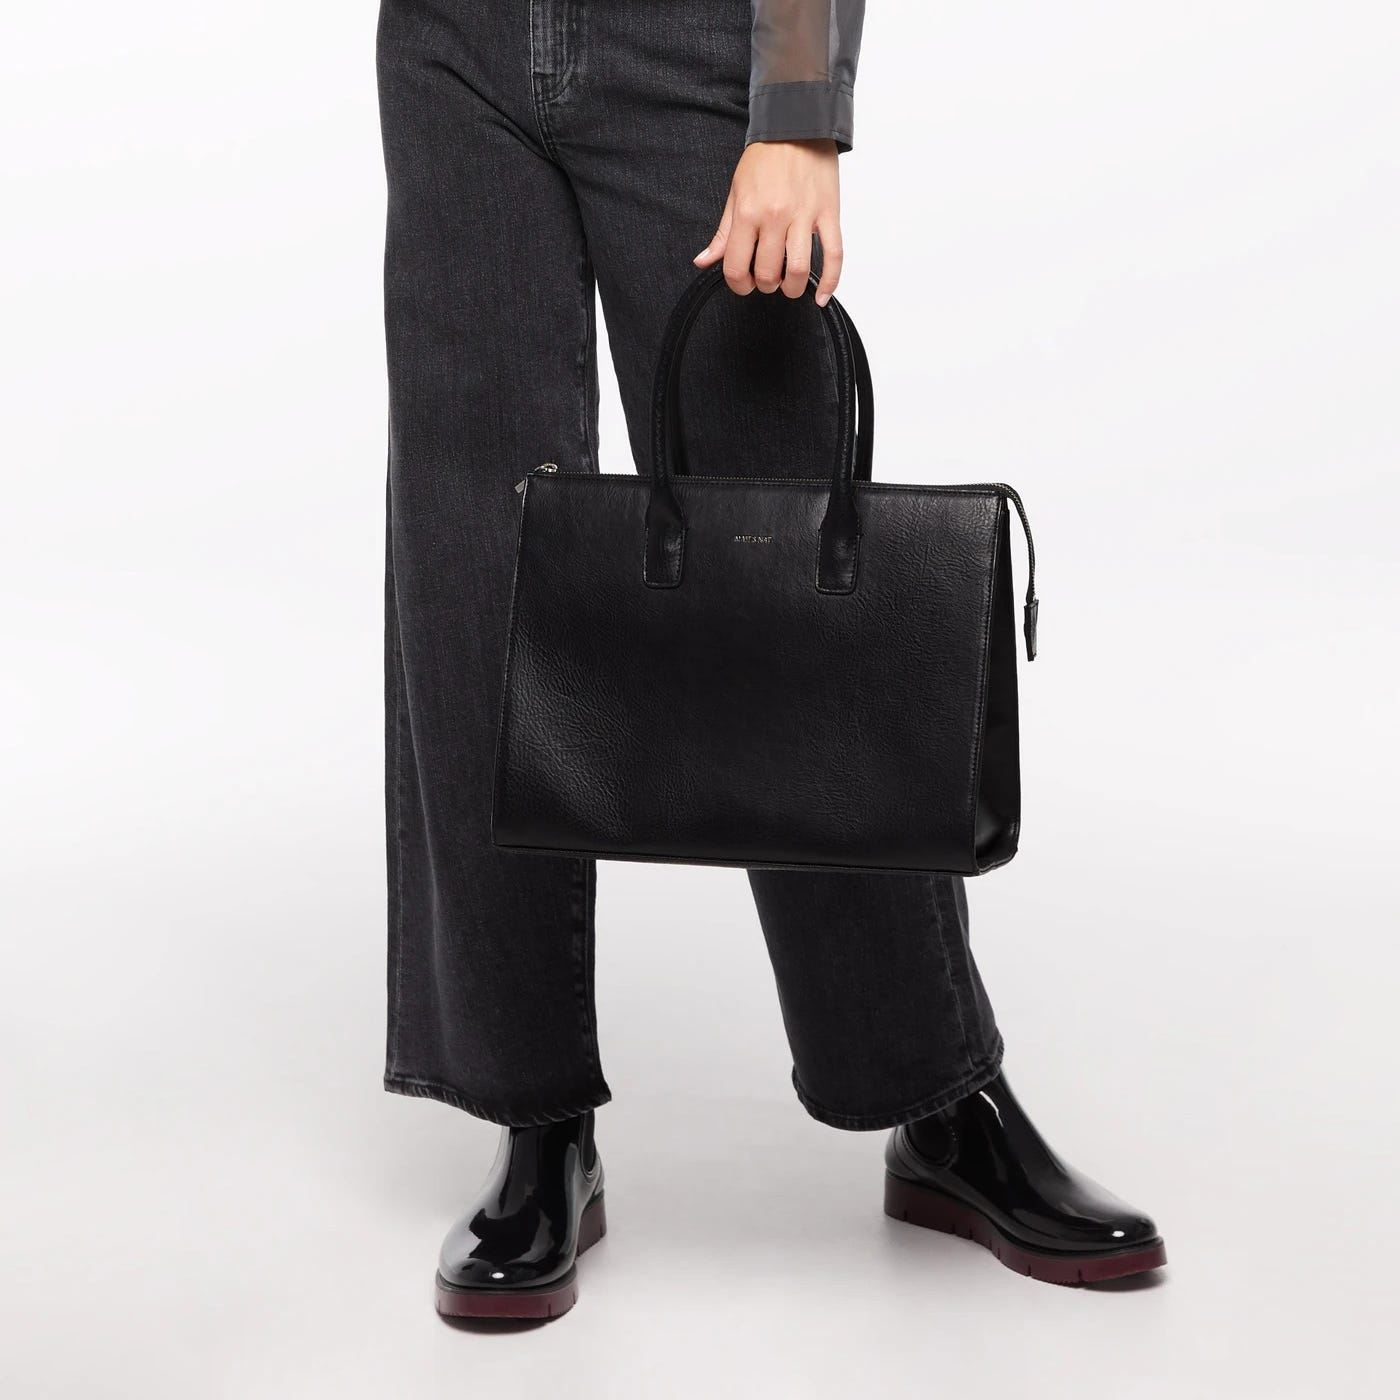 Matt & Nat Aspen Satchel Bag - Black